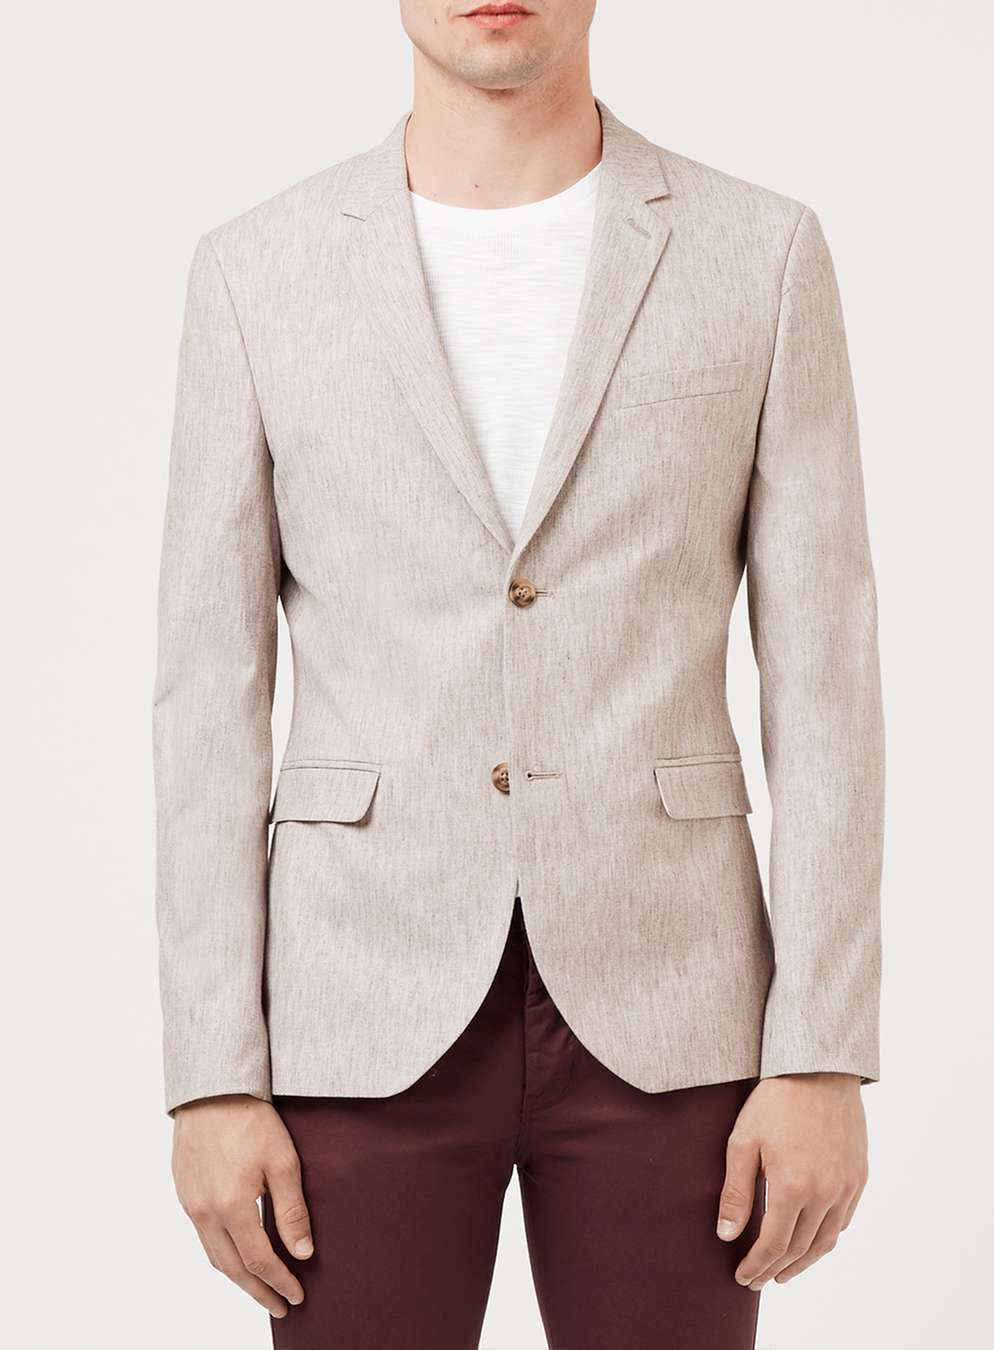 Lightweight blazer  (Featured: Topman)